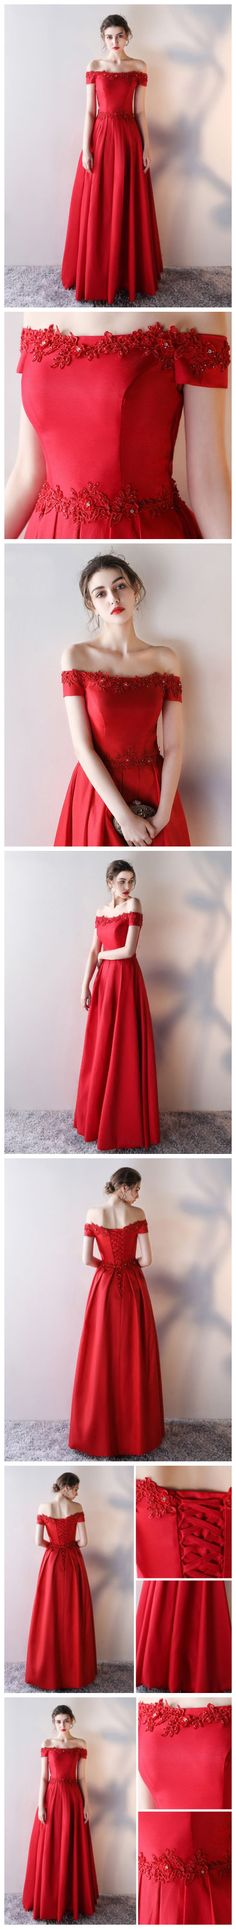 Chic A-line Red Off-the-shoulder Applique Modest Prom Dress Evening Dress Gorgeous Prom Dresses, Classy Prom Dresses, Junior Prom Dresses, Prom Dresses Two Piece, Simple Prom Dress, Prom Dresses For Teens, Unique Prom Dresses, Pretty Dresses, Homecoming Dresses